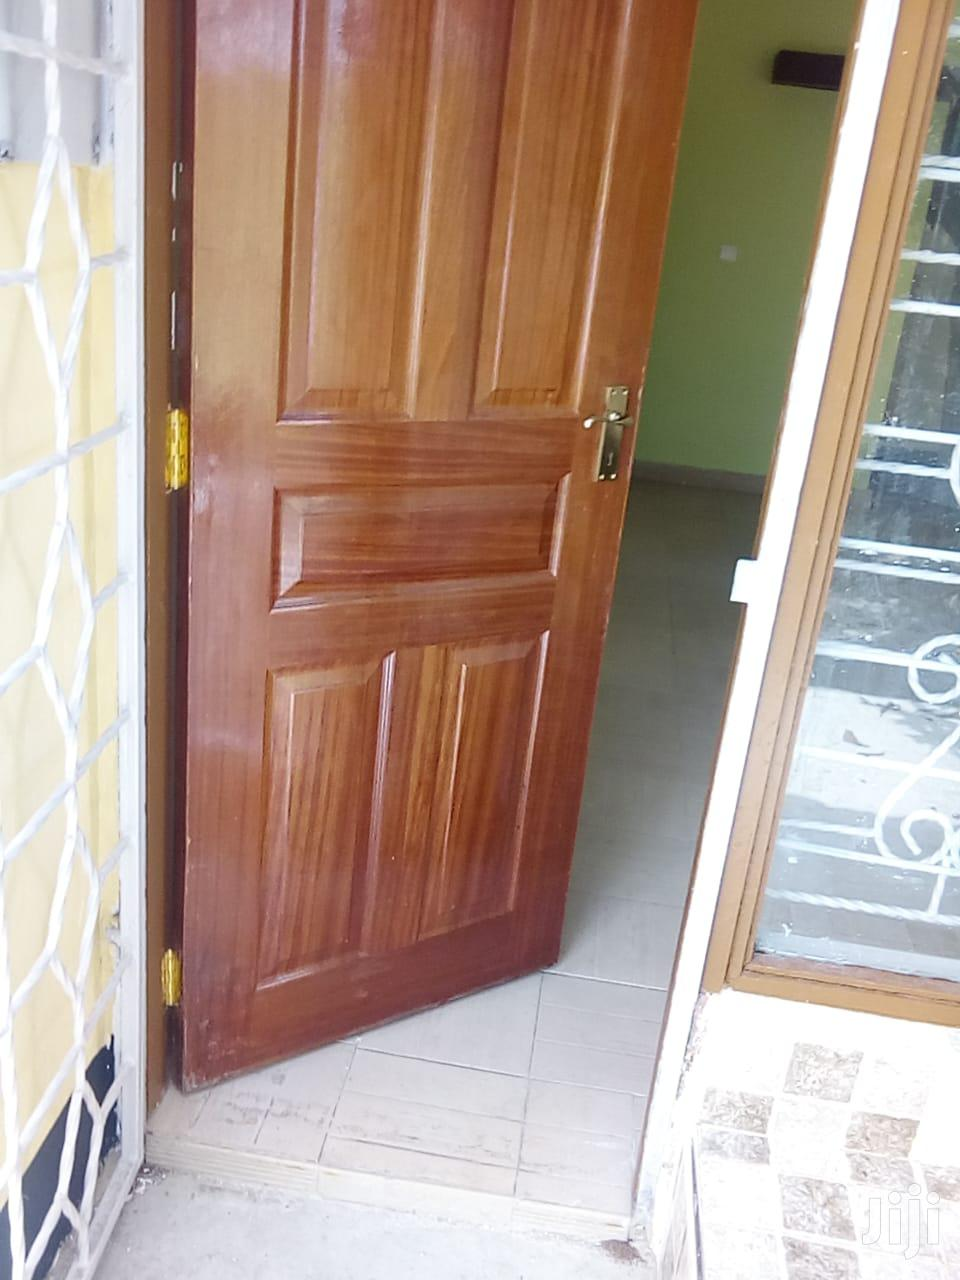 Archive: BURUBURU Phase-5(Nairobi) 3bedrm Maisonette for Sale, With Title Deed